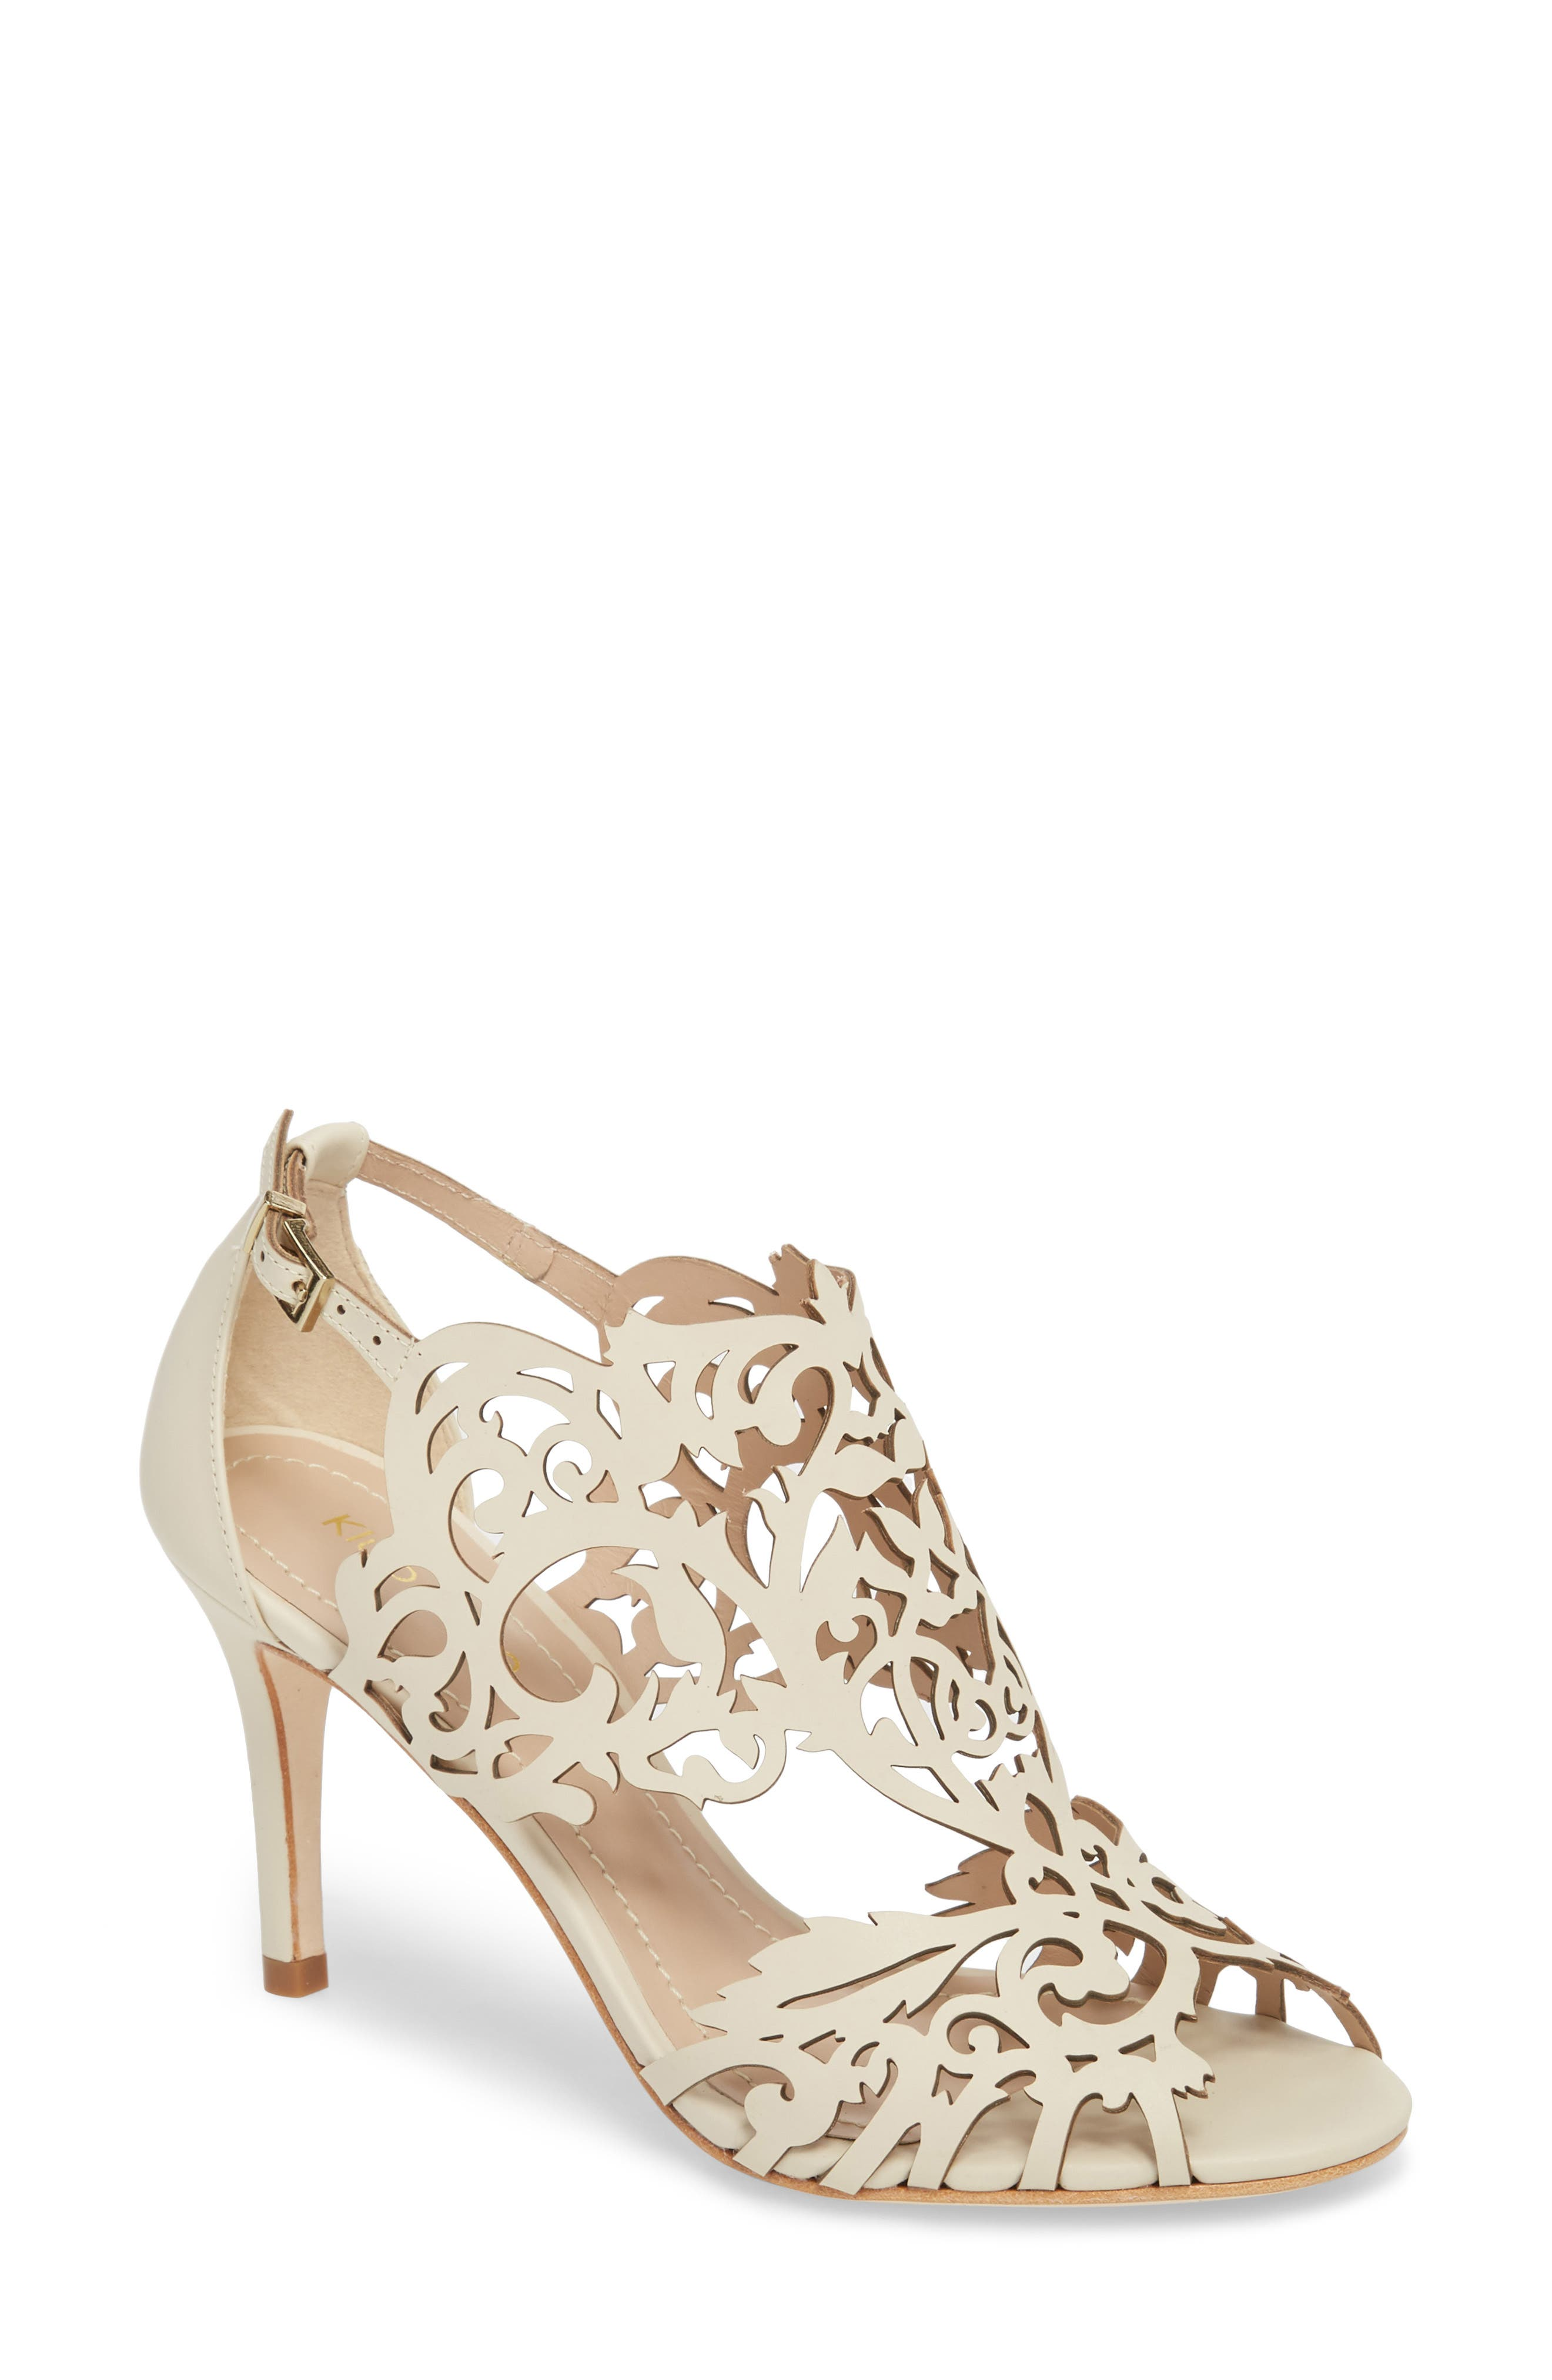 Marcela 3 Laser Cutout Sandal,                         Main,                         color, Ivory Leather